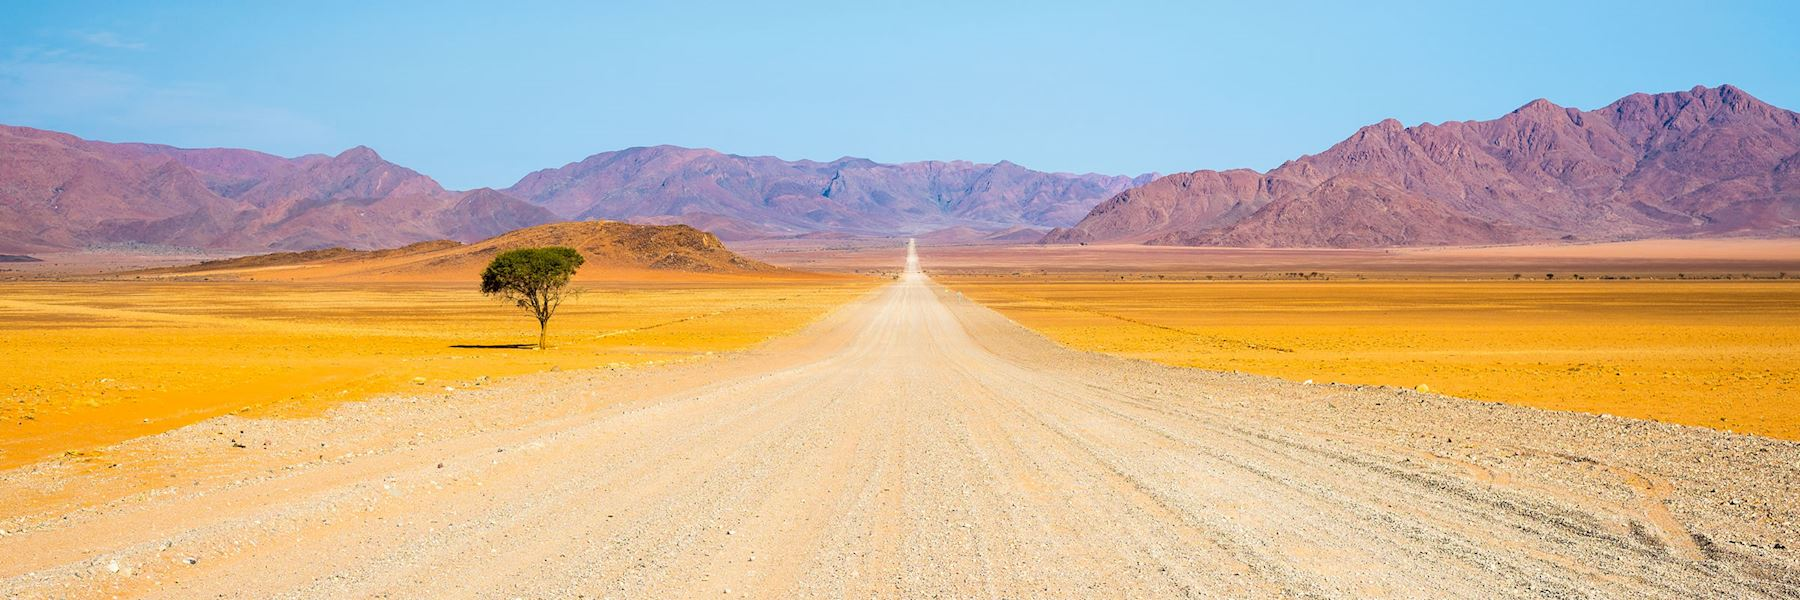 Visit the Naukluft Mountains, Namibia